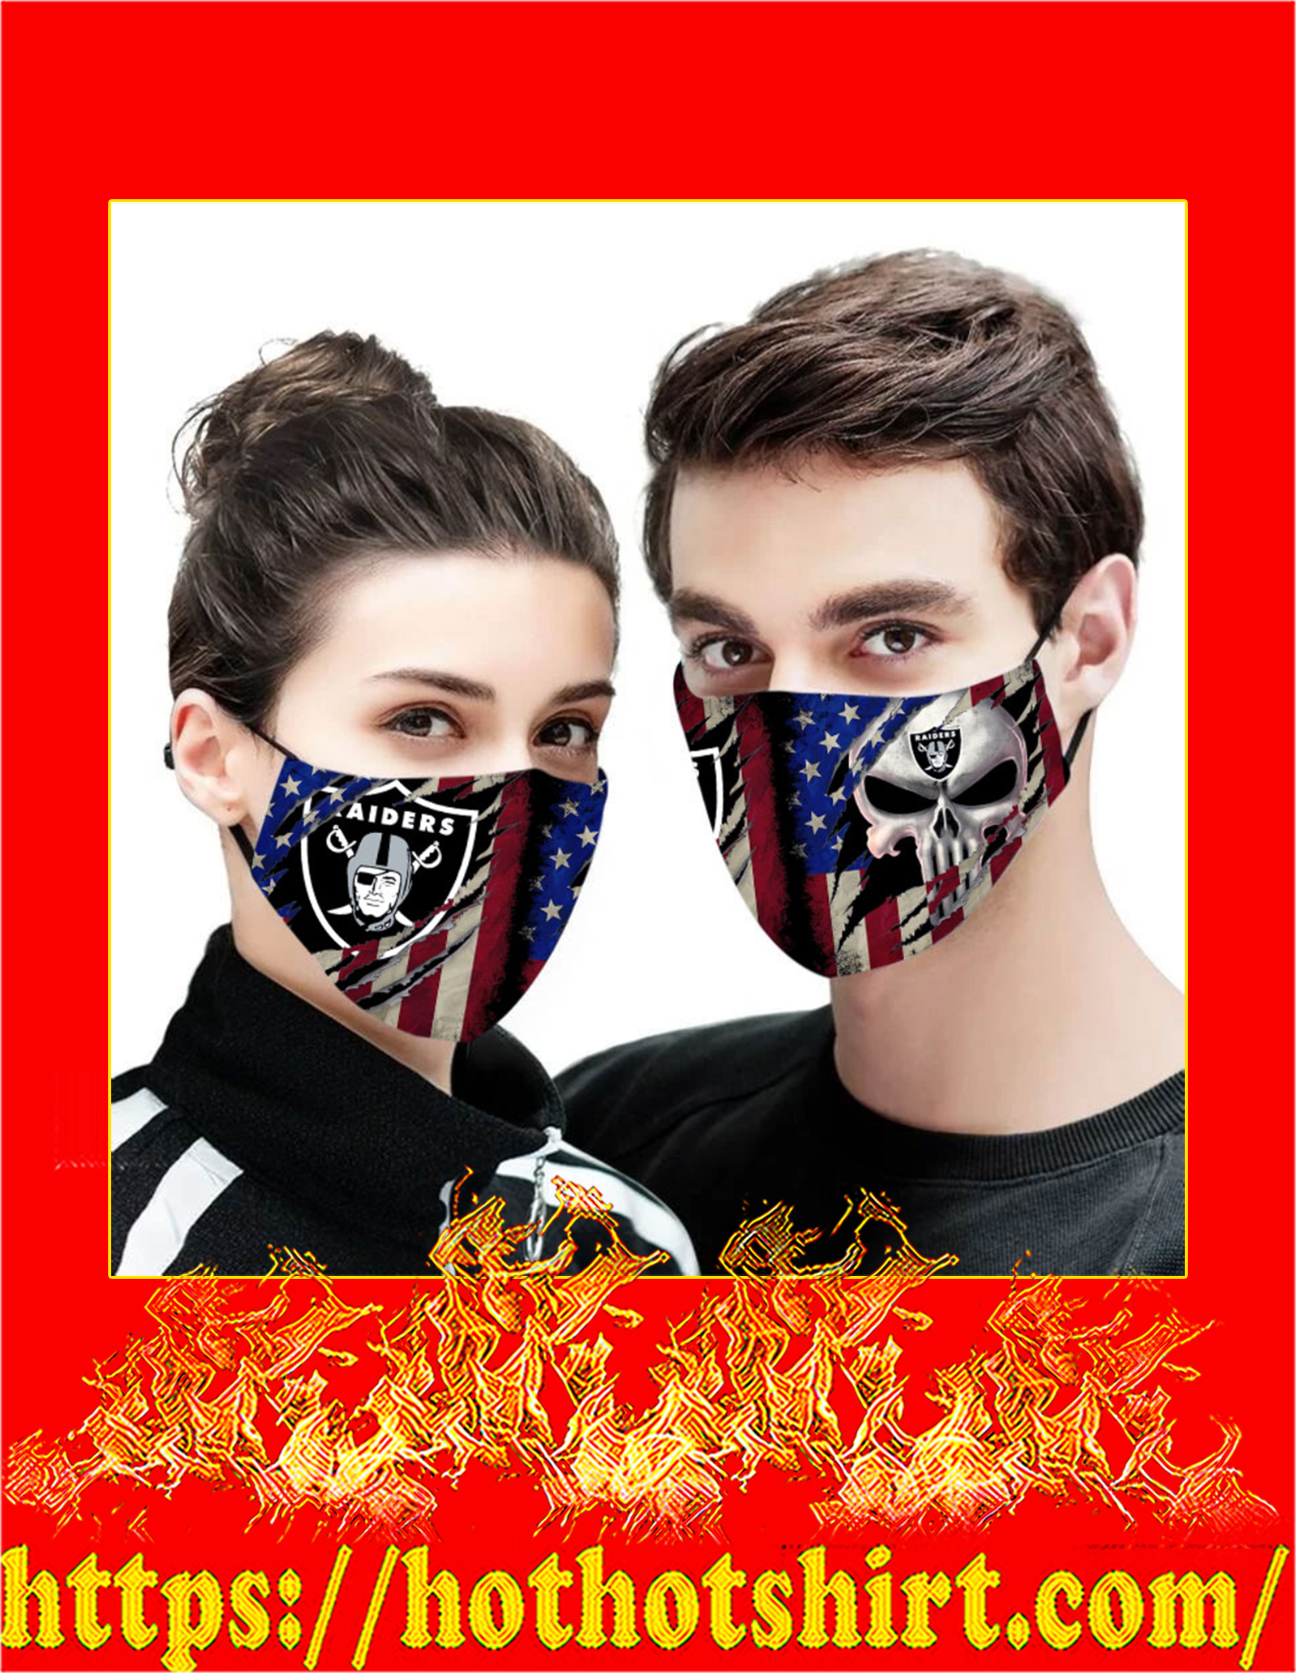 Raiders punisher skull american flag face mask - detail